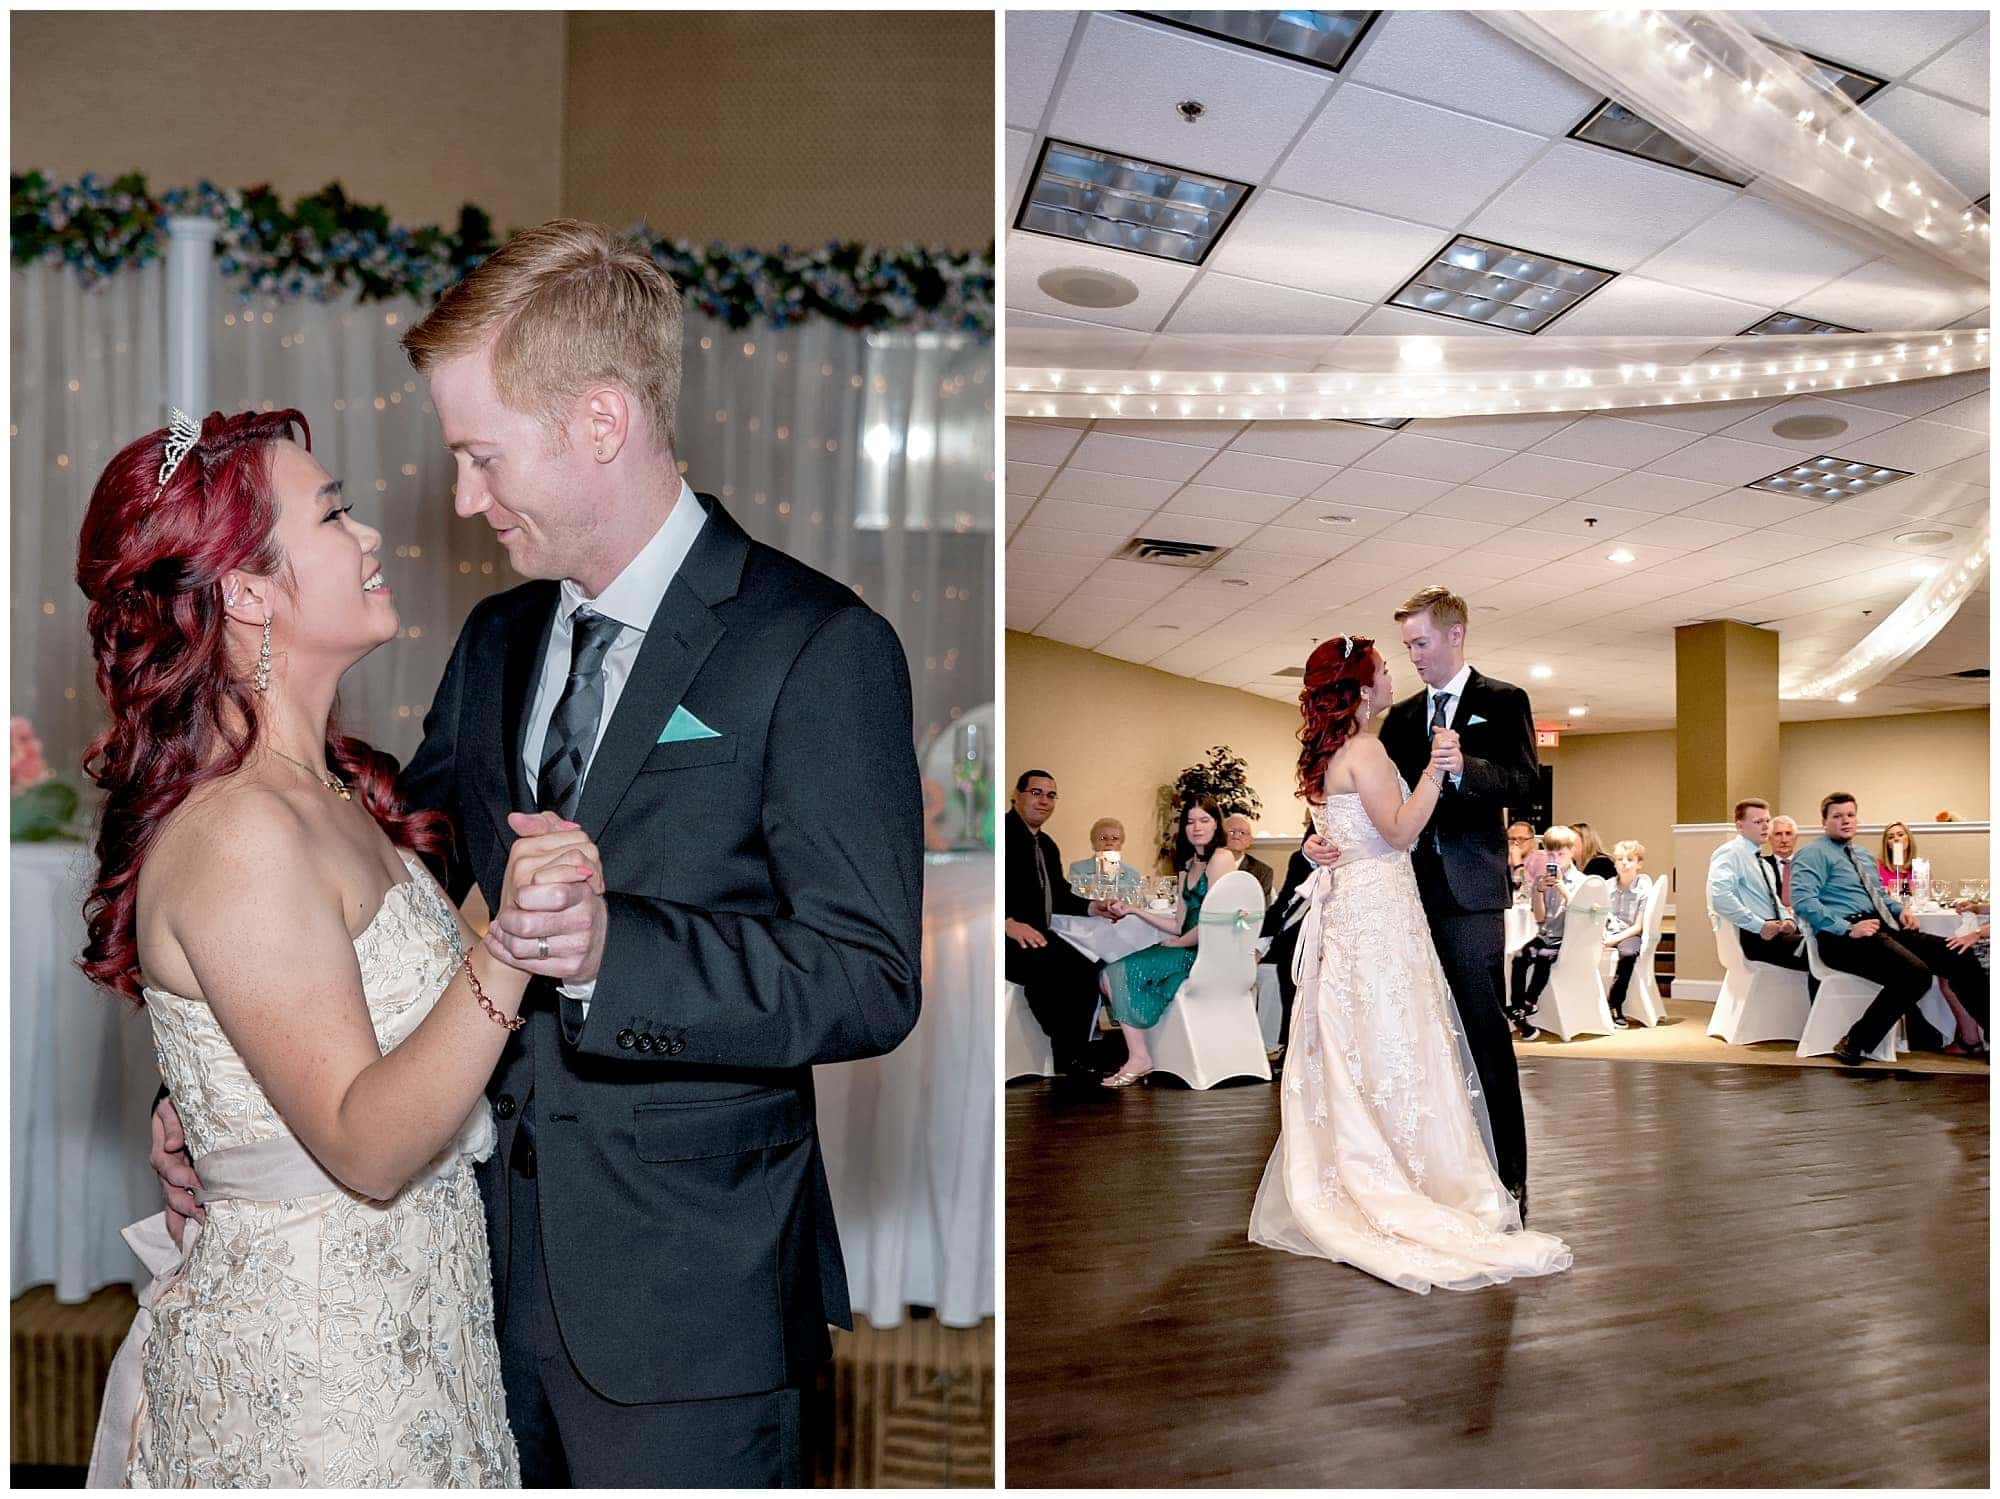 The bride and groom during their first wedding dance at the Atlantica Hotel in Halifax, NS.